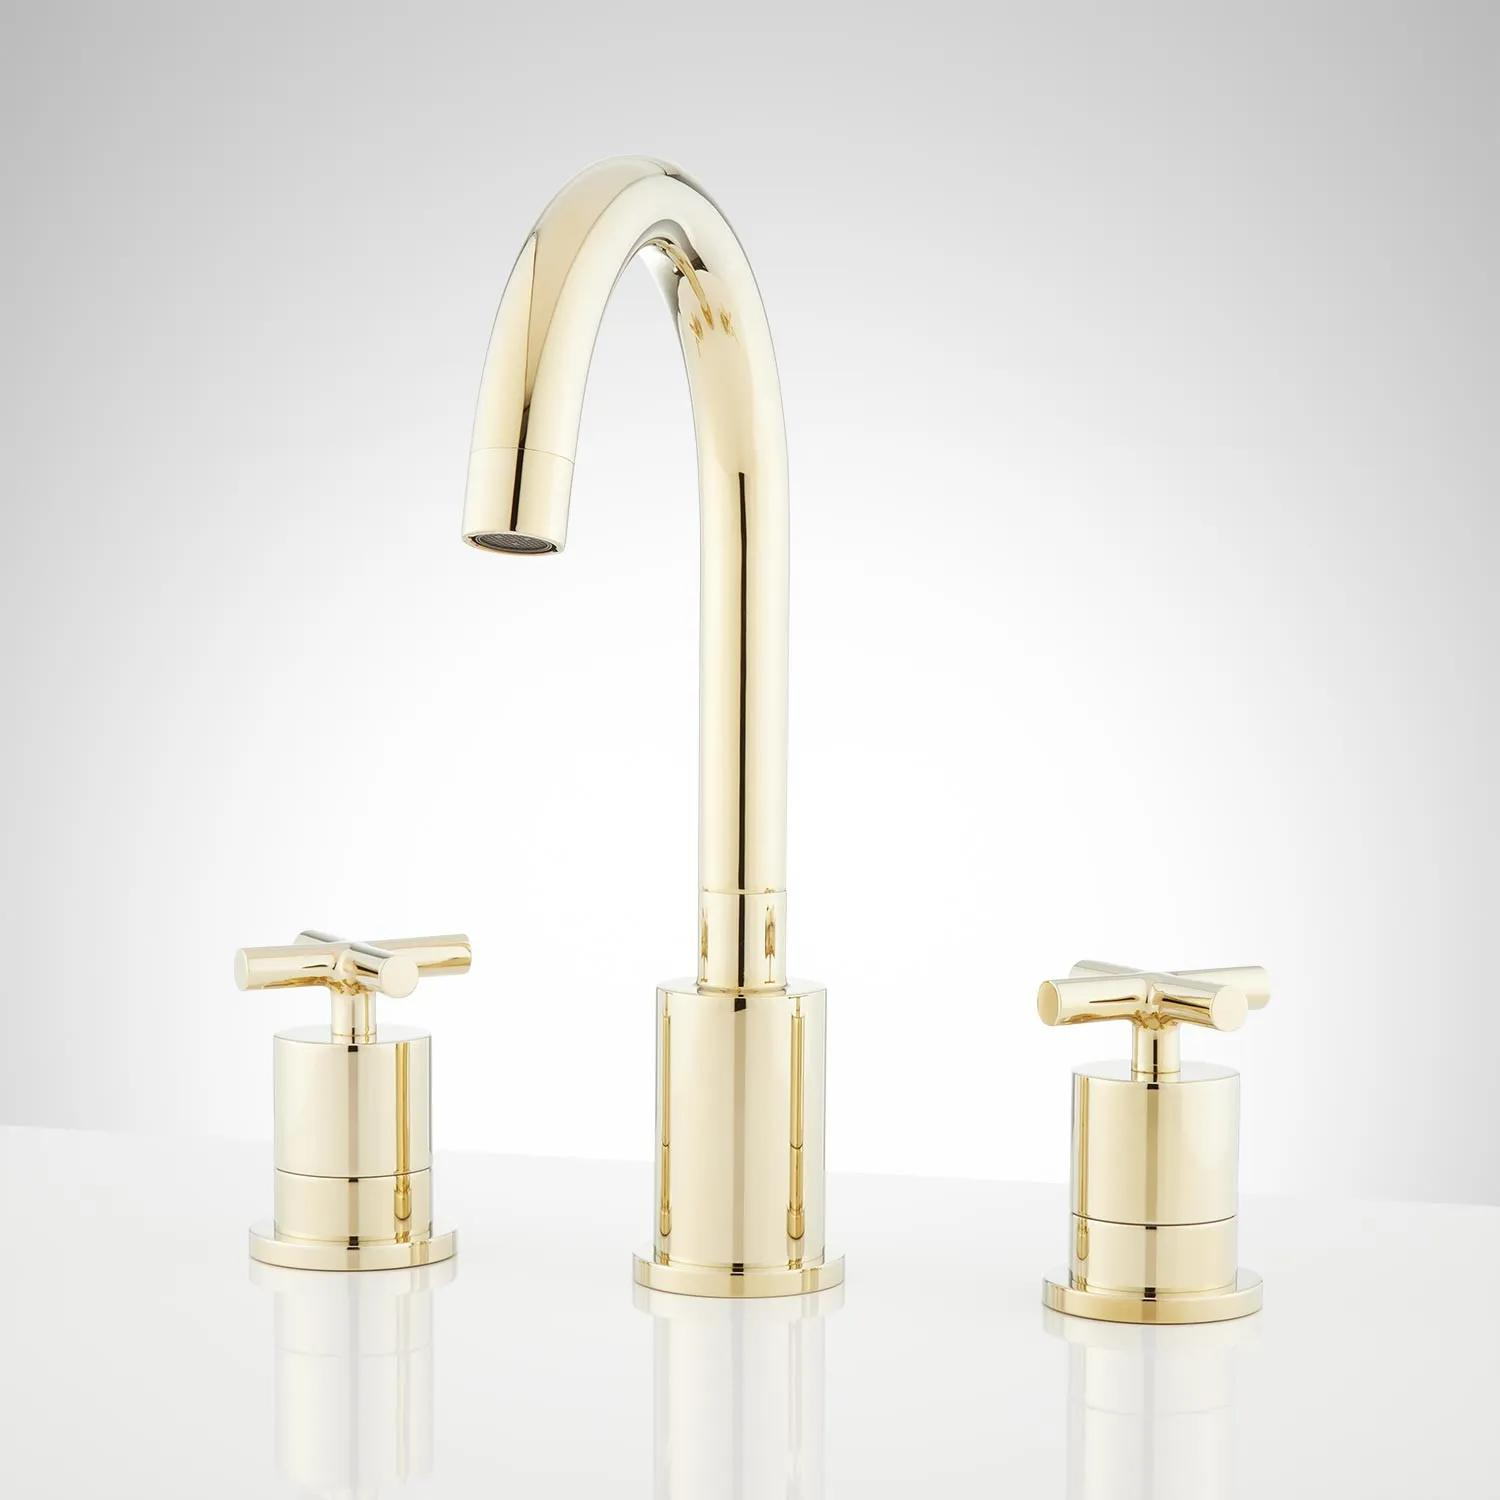 Exira Widespread Bathroom Faucet Bathroom